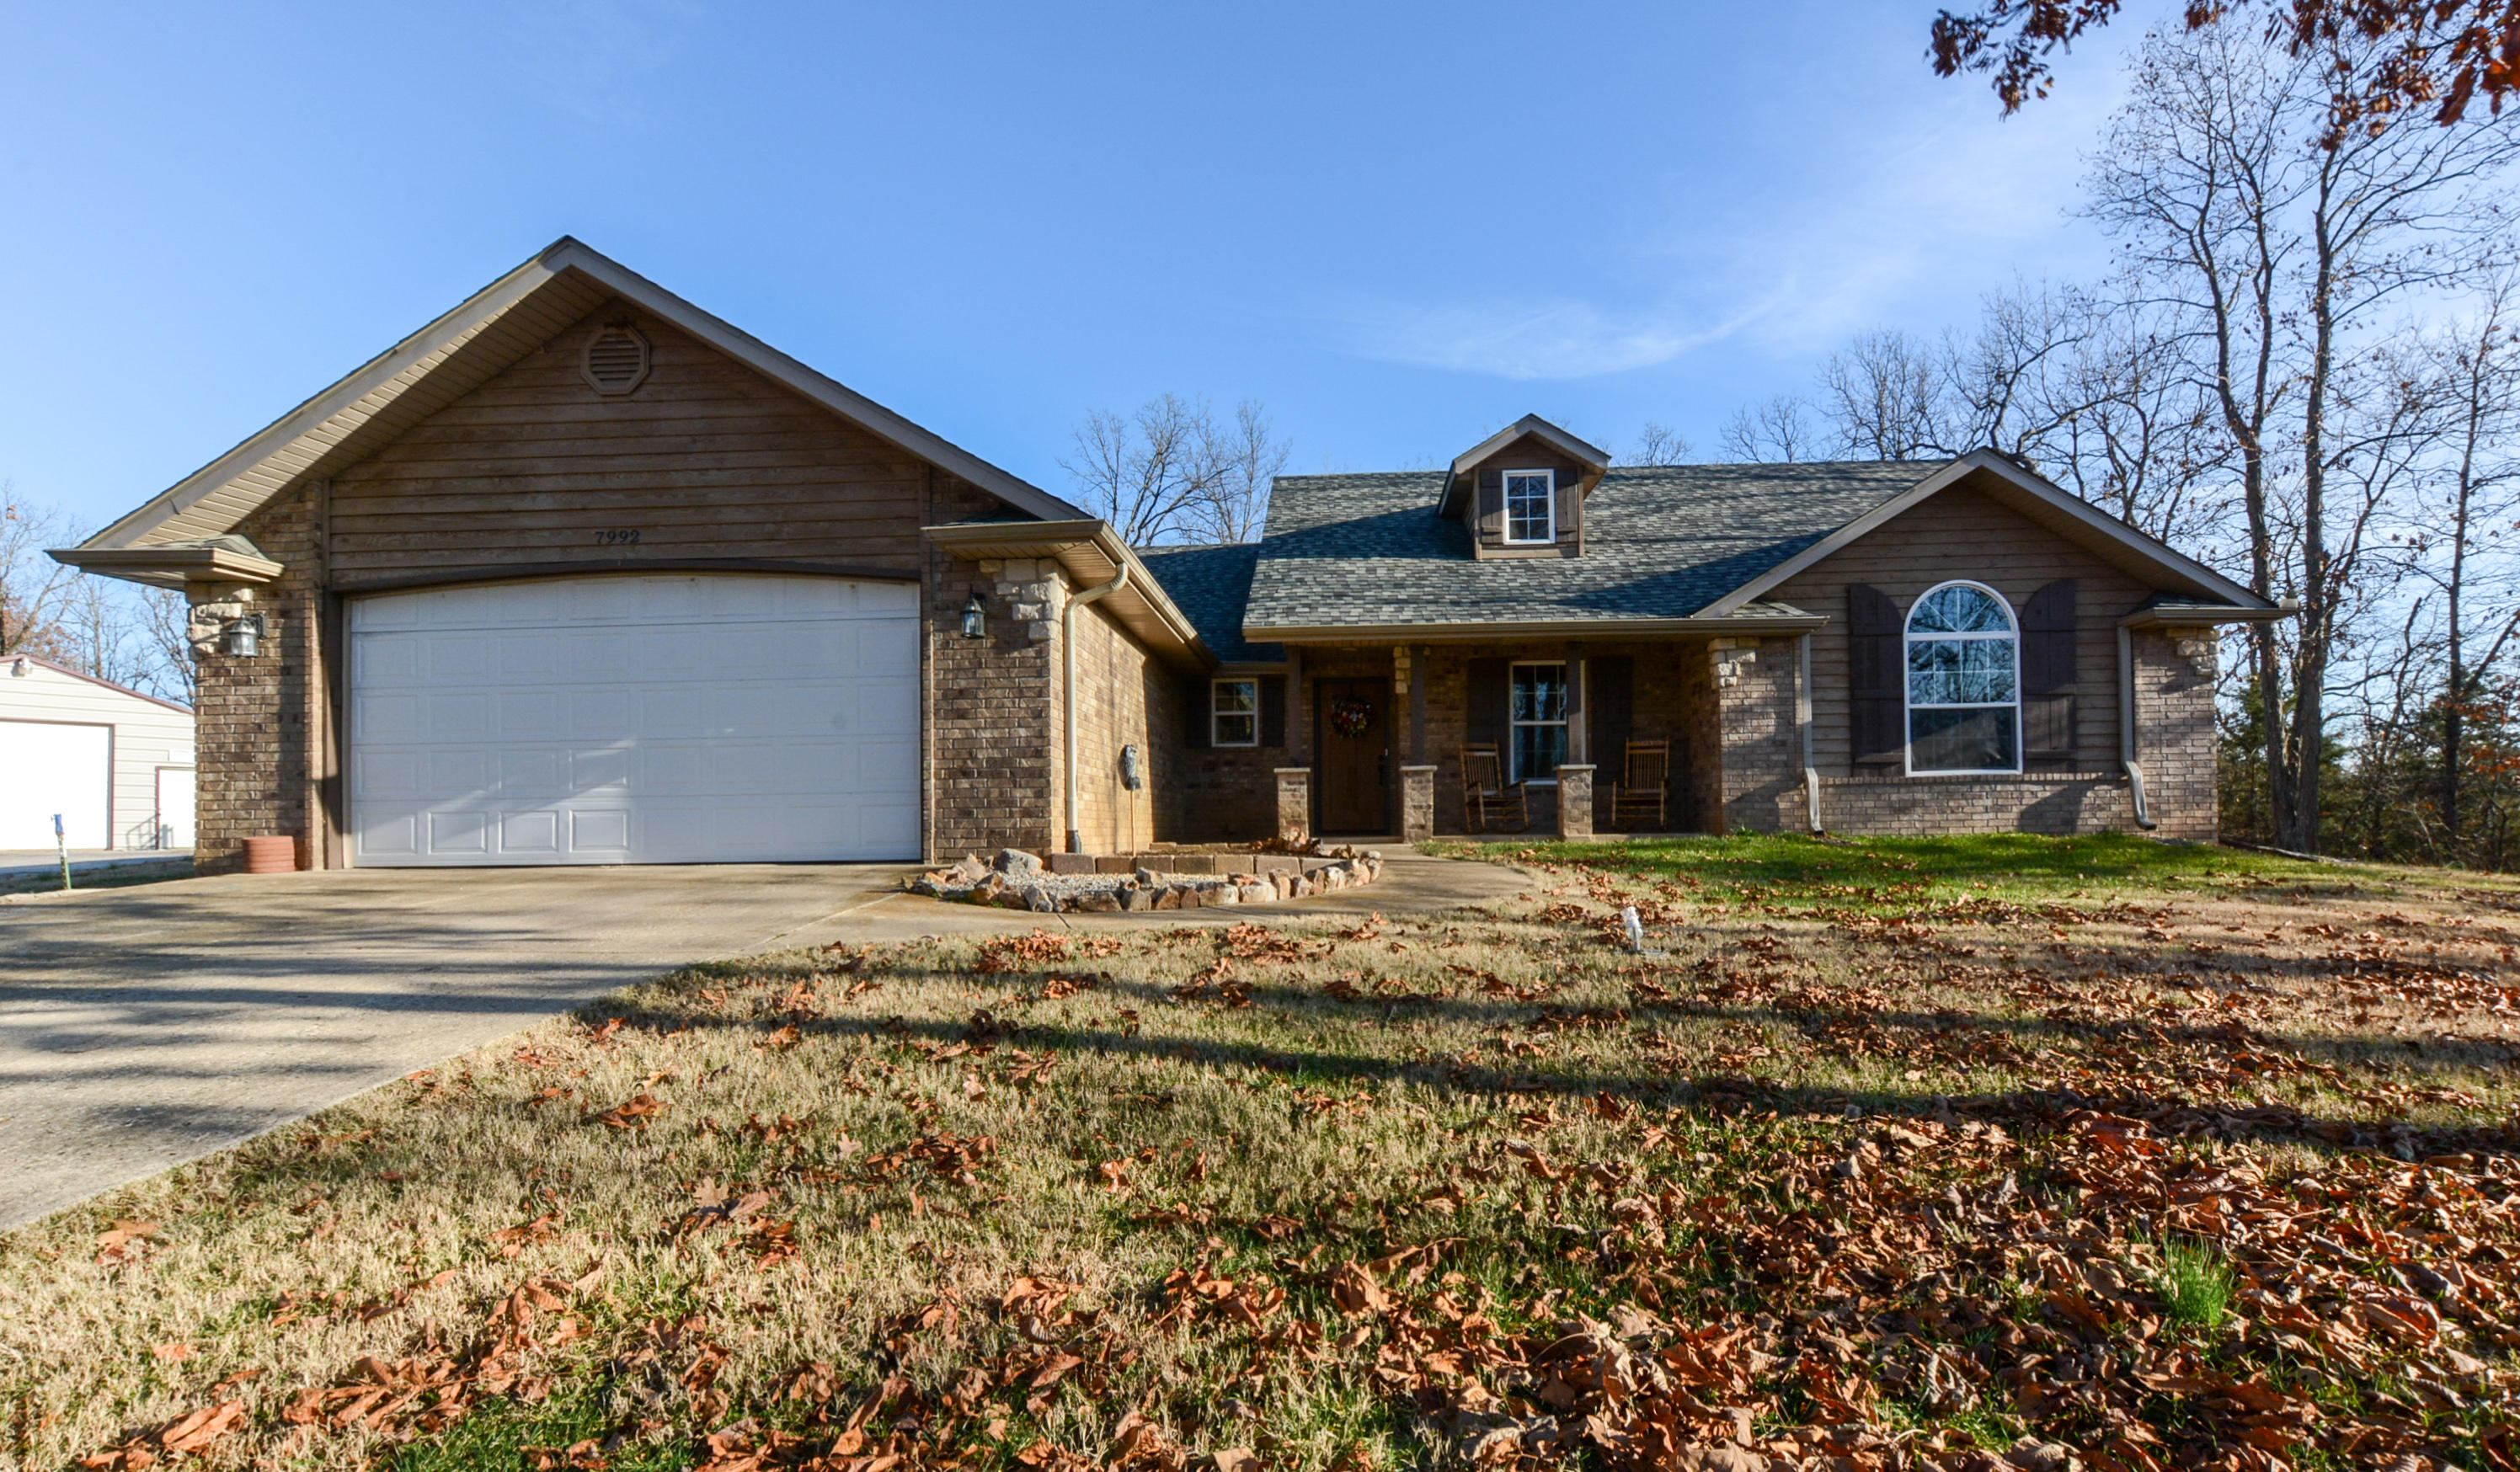 7992 North Quiet Oaks Lane Willard, MO 65781